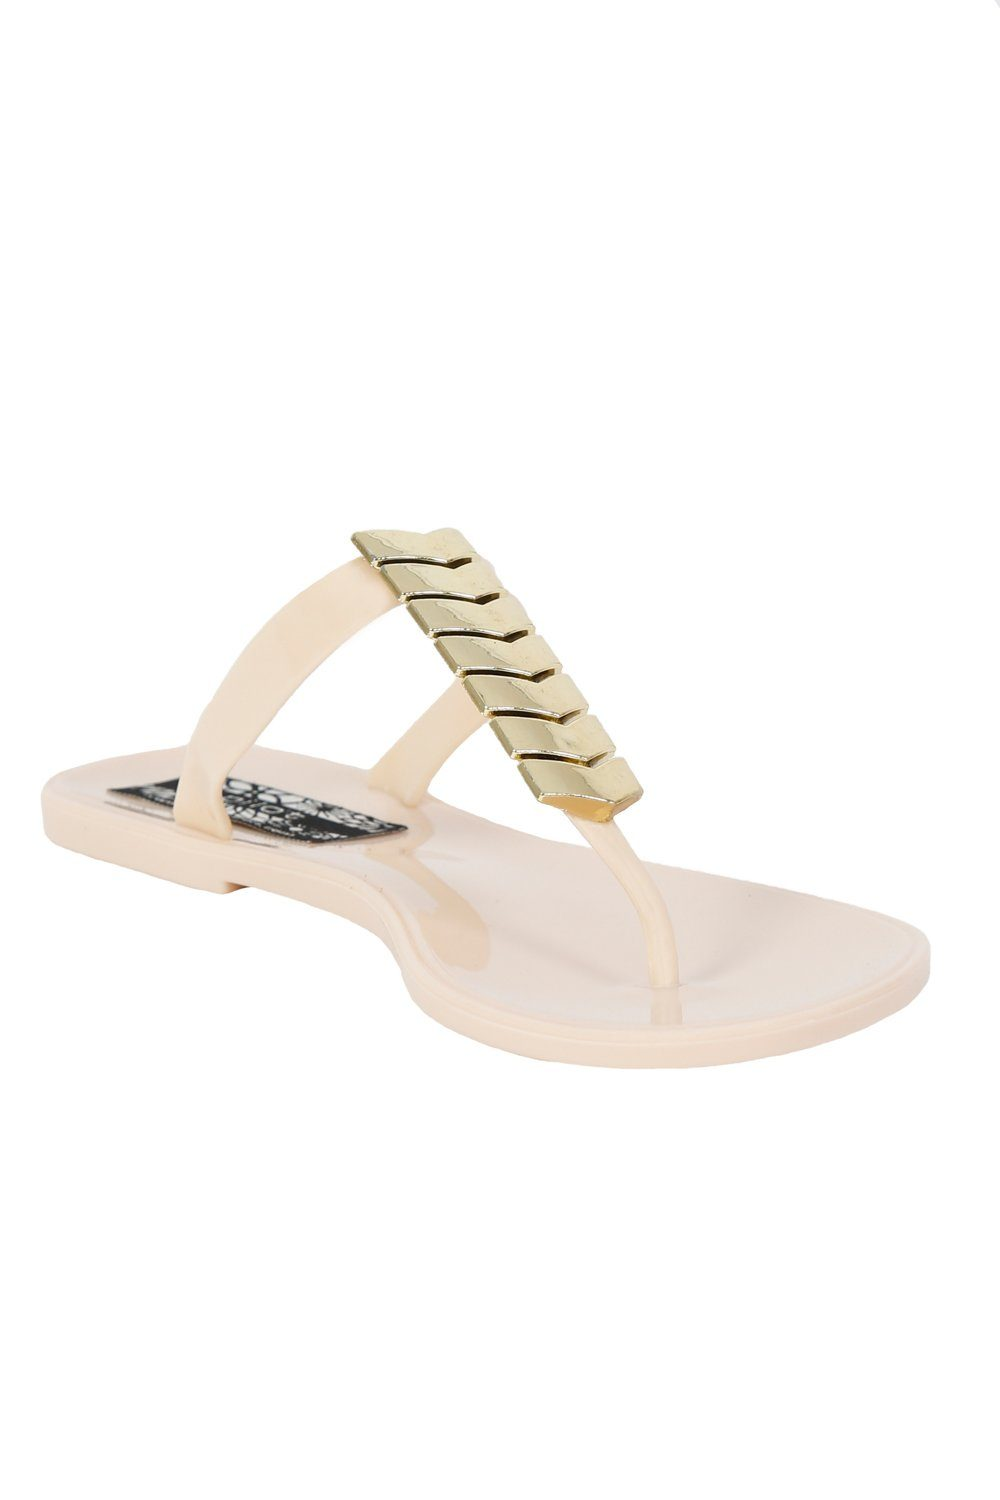 Chevron Detail Toe Post Flat Jelly Sandals in Beige 3